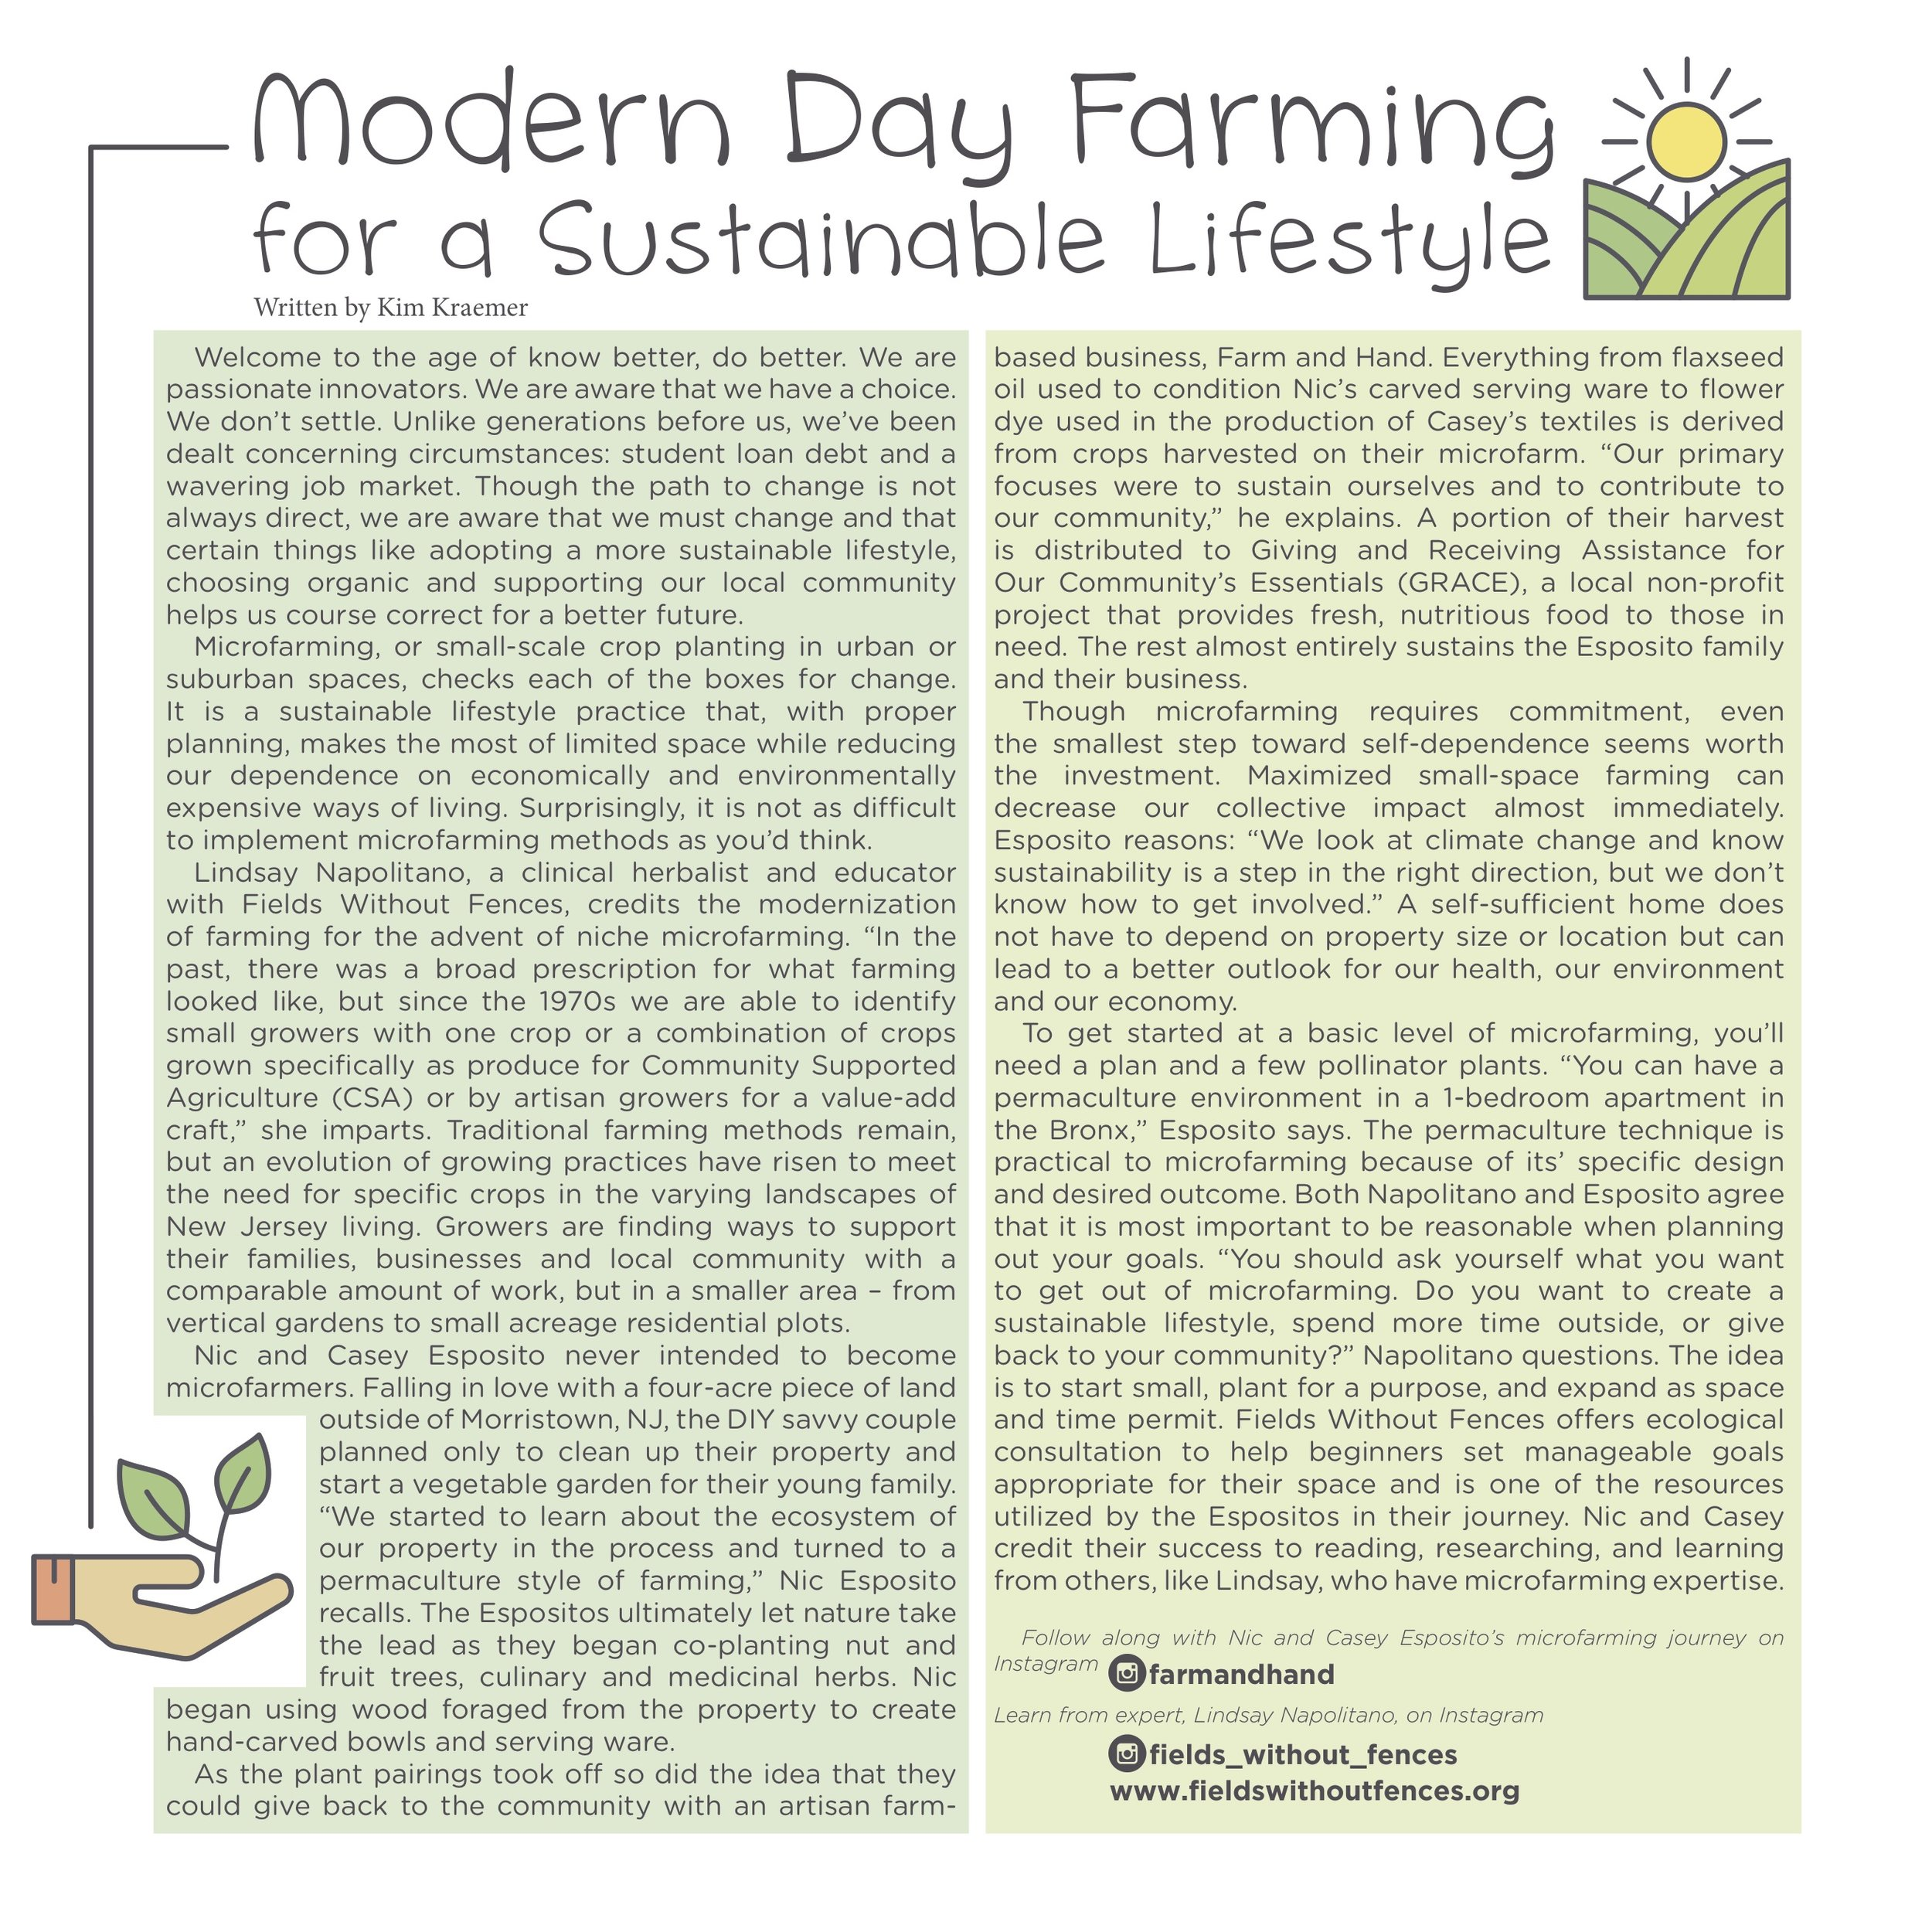 Modern Day Farming Boasts an Eco-Friendly Future in Breaker Zine - June 30, 2019 Morristown, NJ -- Kim Kraemer of Marketspace Vendor Events interviews Lindsay Napolitano of Fields without Fences as well as Nic and Casey Esposito of Farm and Hand. Their sustainable lifestyles set a precedent on how the future could be embracing micro-farming and self-dependence. Read more in Breaker Zine issue nine.